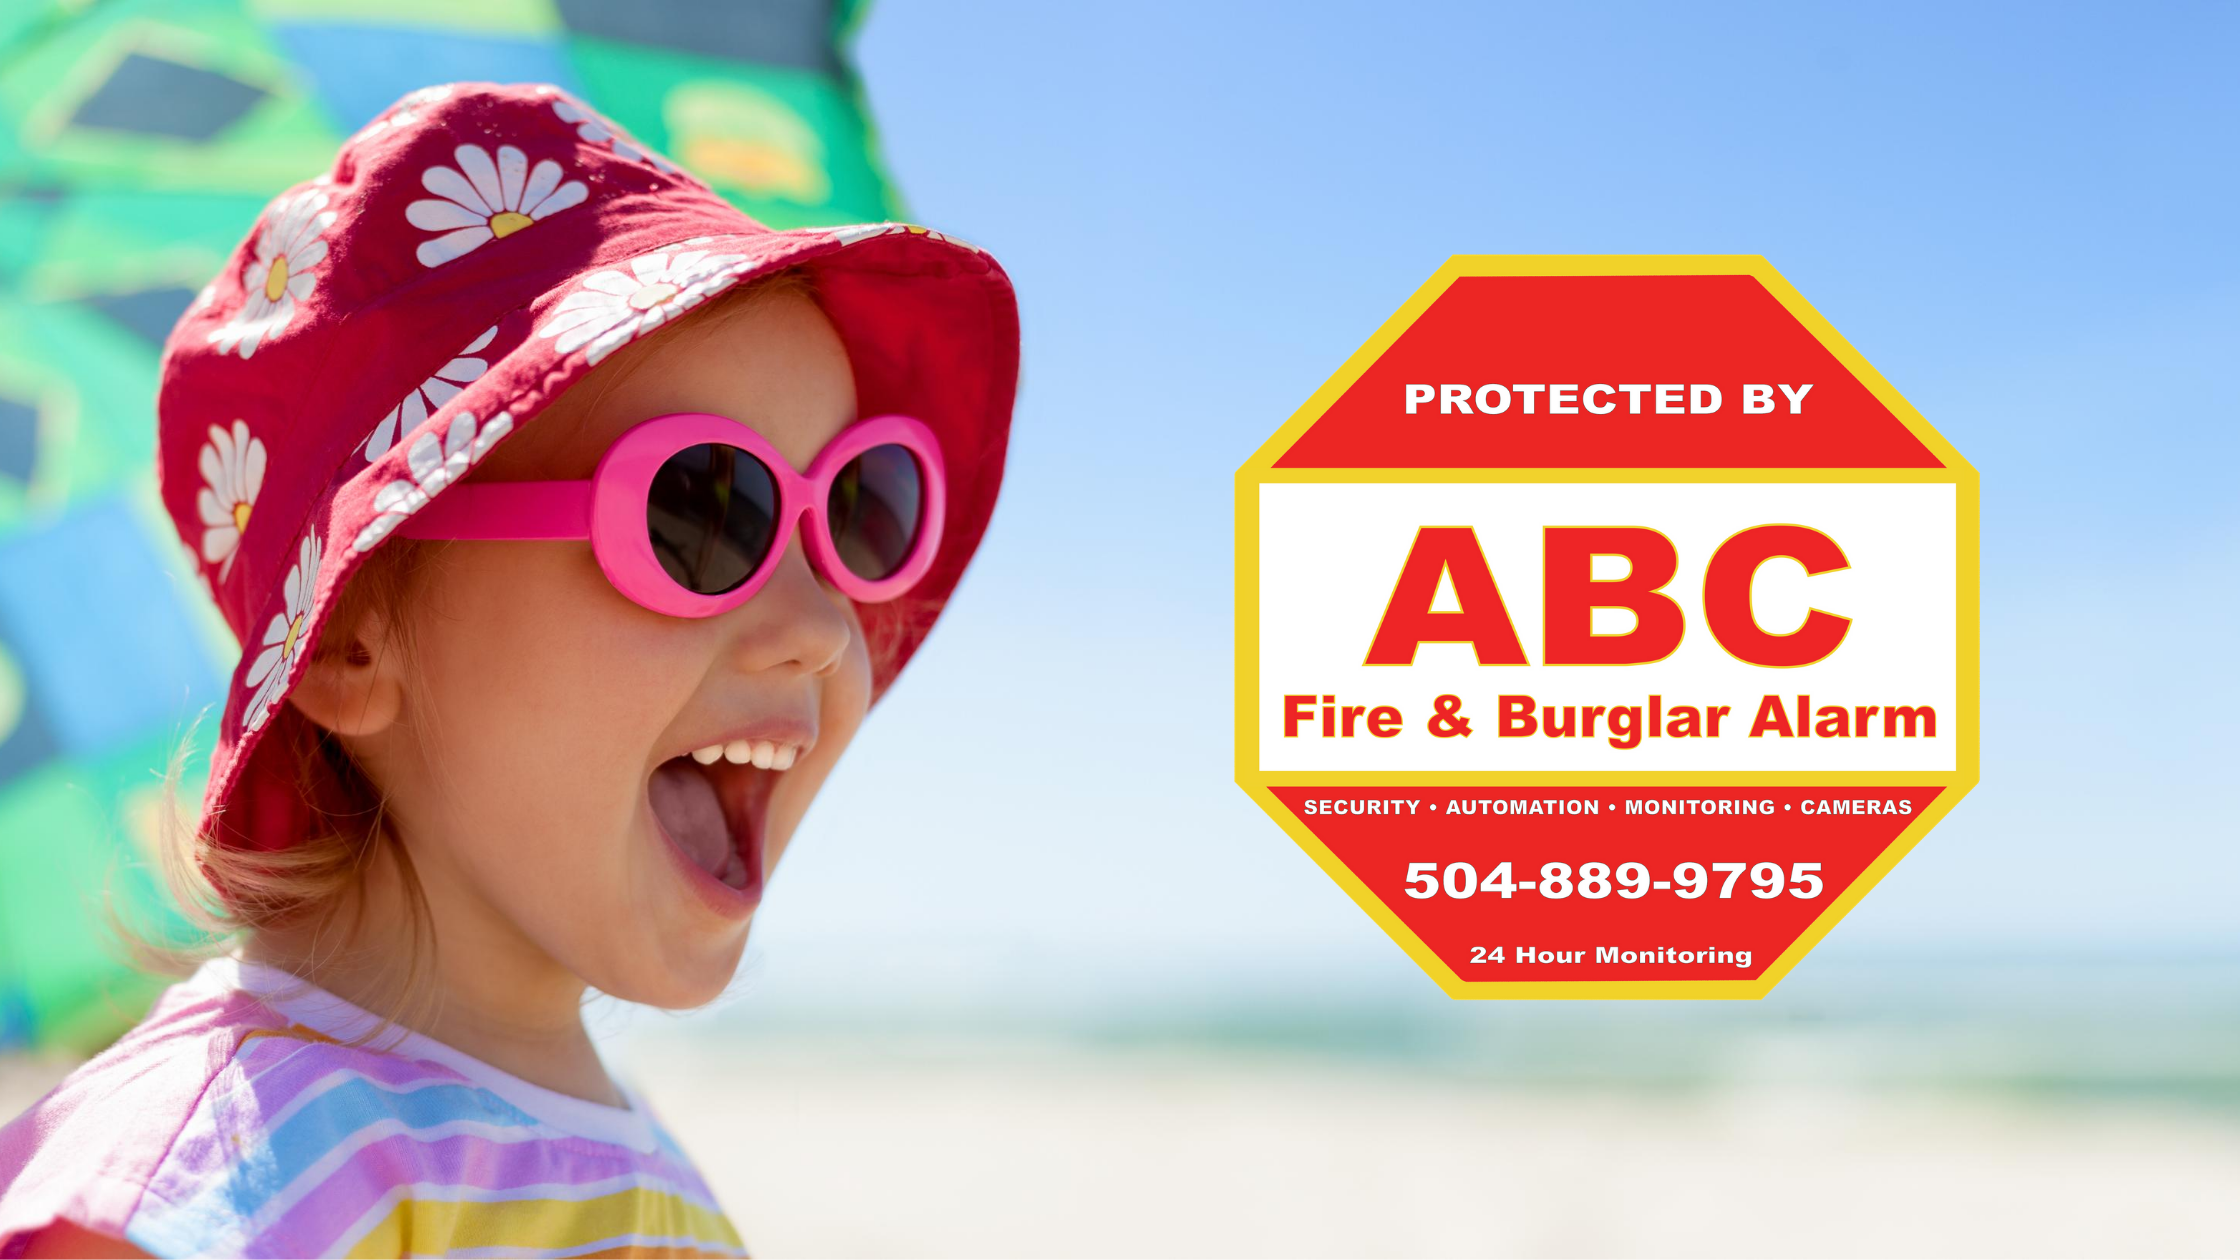 Protect Your Home during Summer Travel